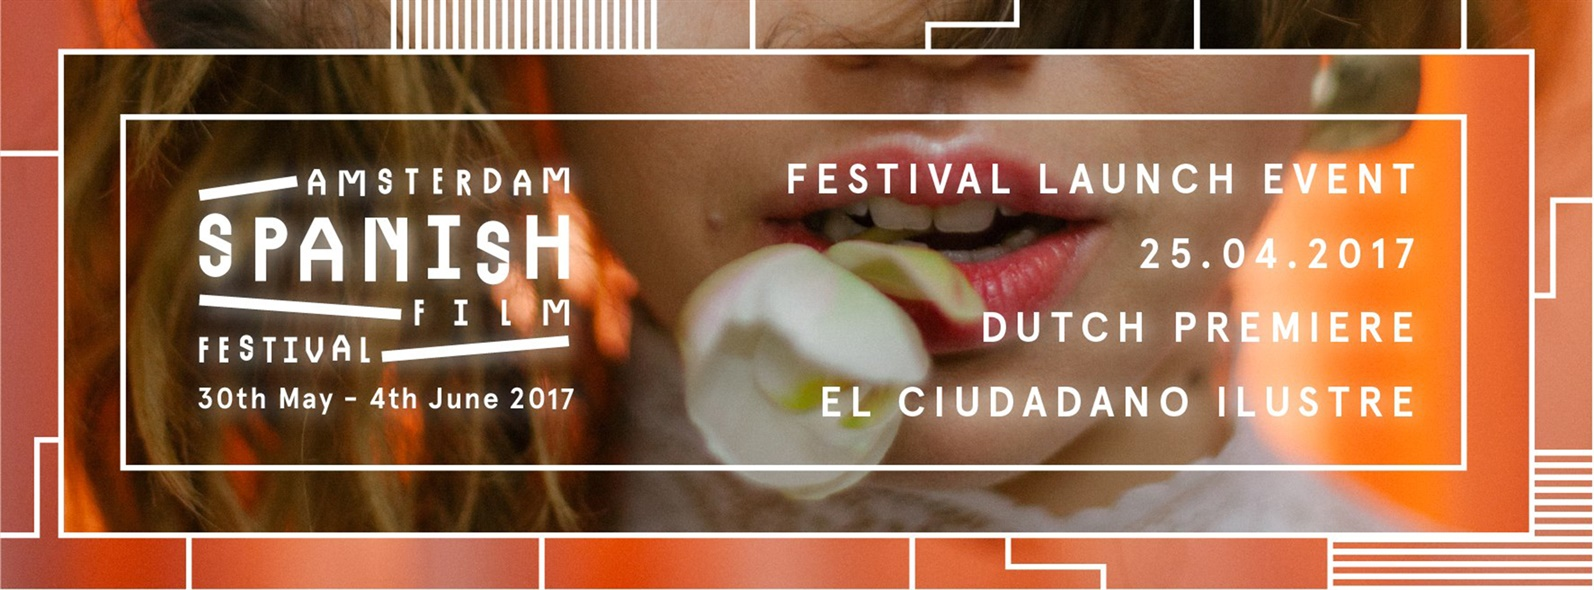 ASFF presents El Ciudadano Illustre